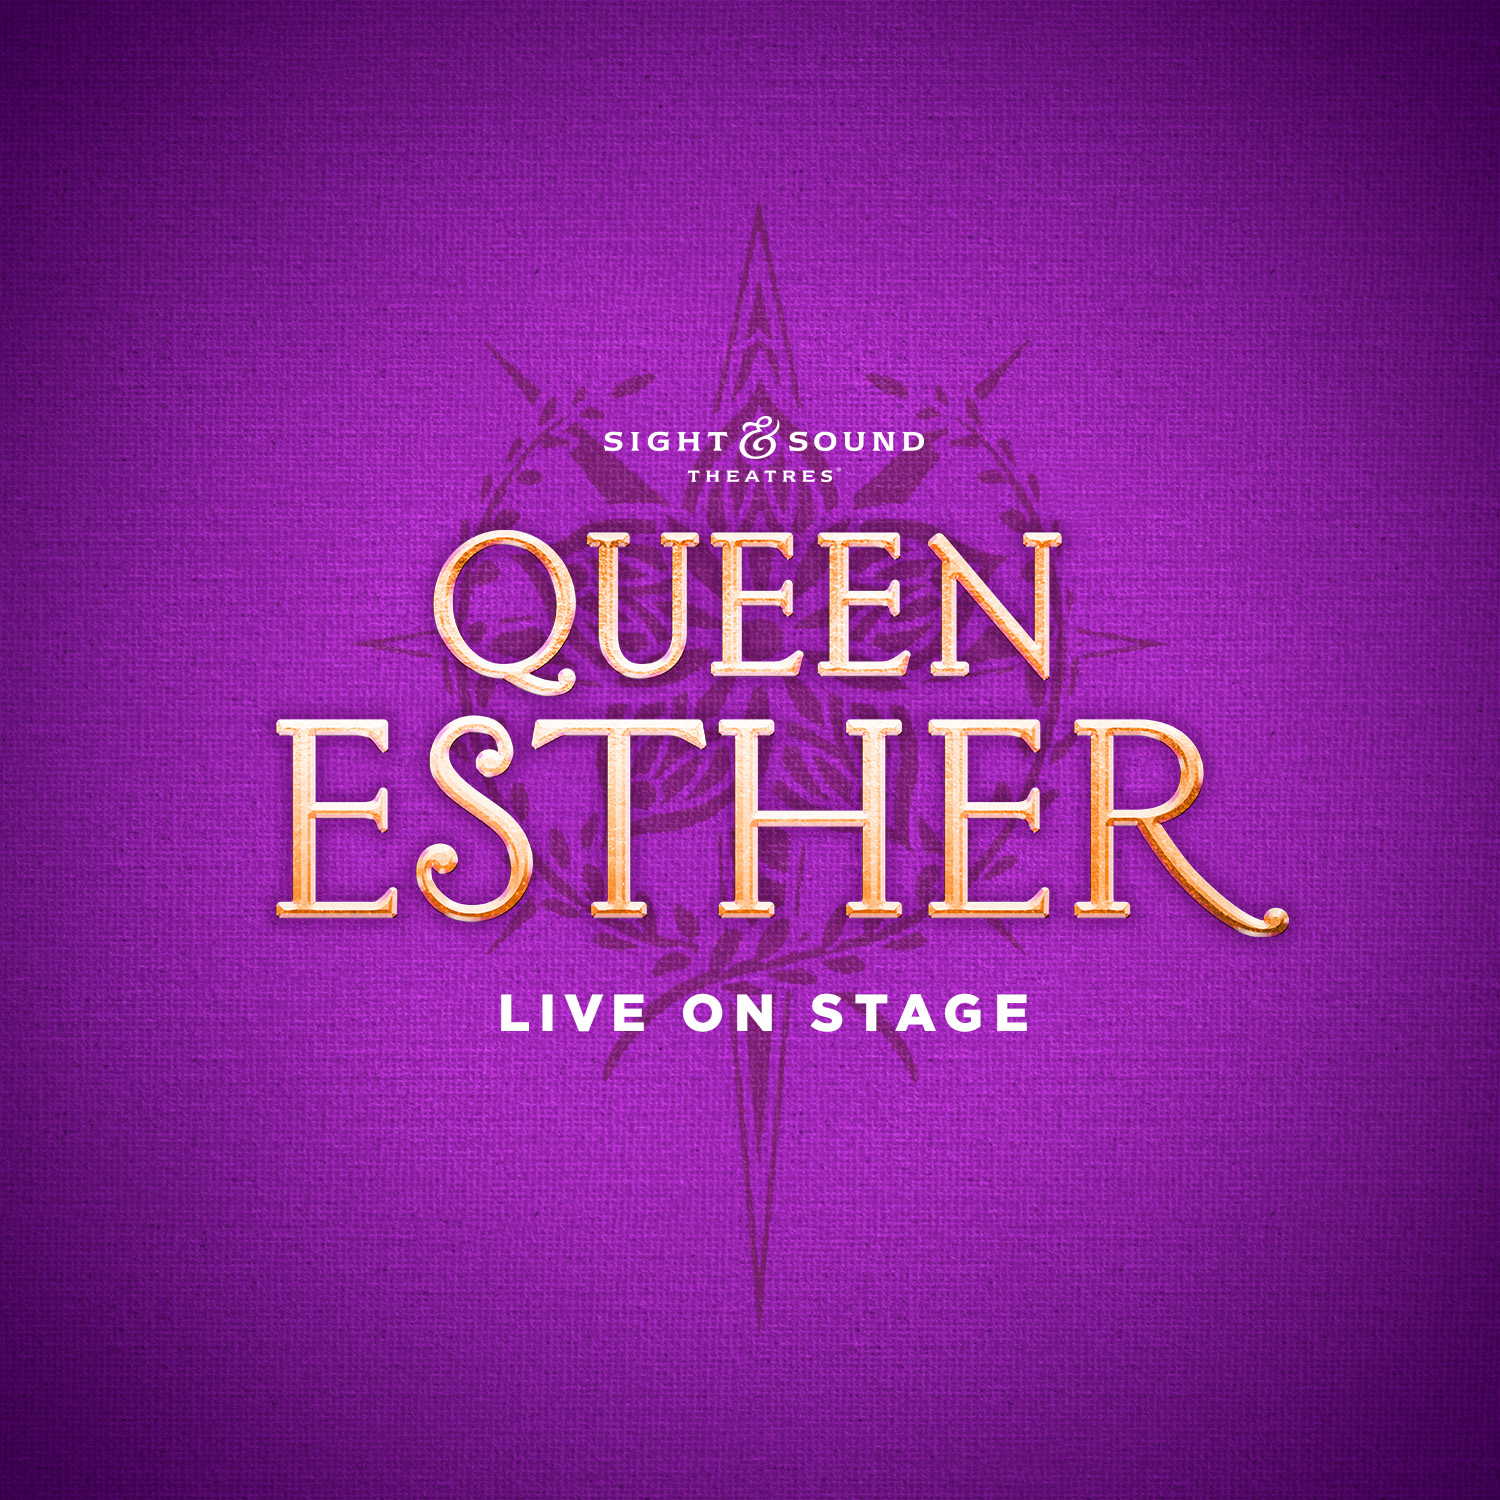 One Week Until the Opening of 'Queen Esther,' Sight & Sound Theatres Sets New Record: 60% of Tickets Booked